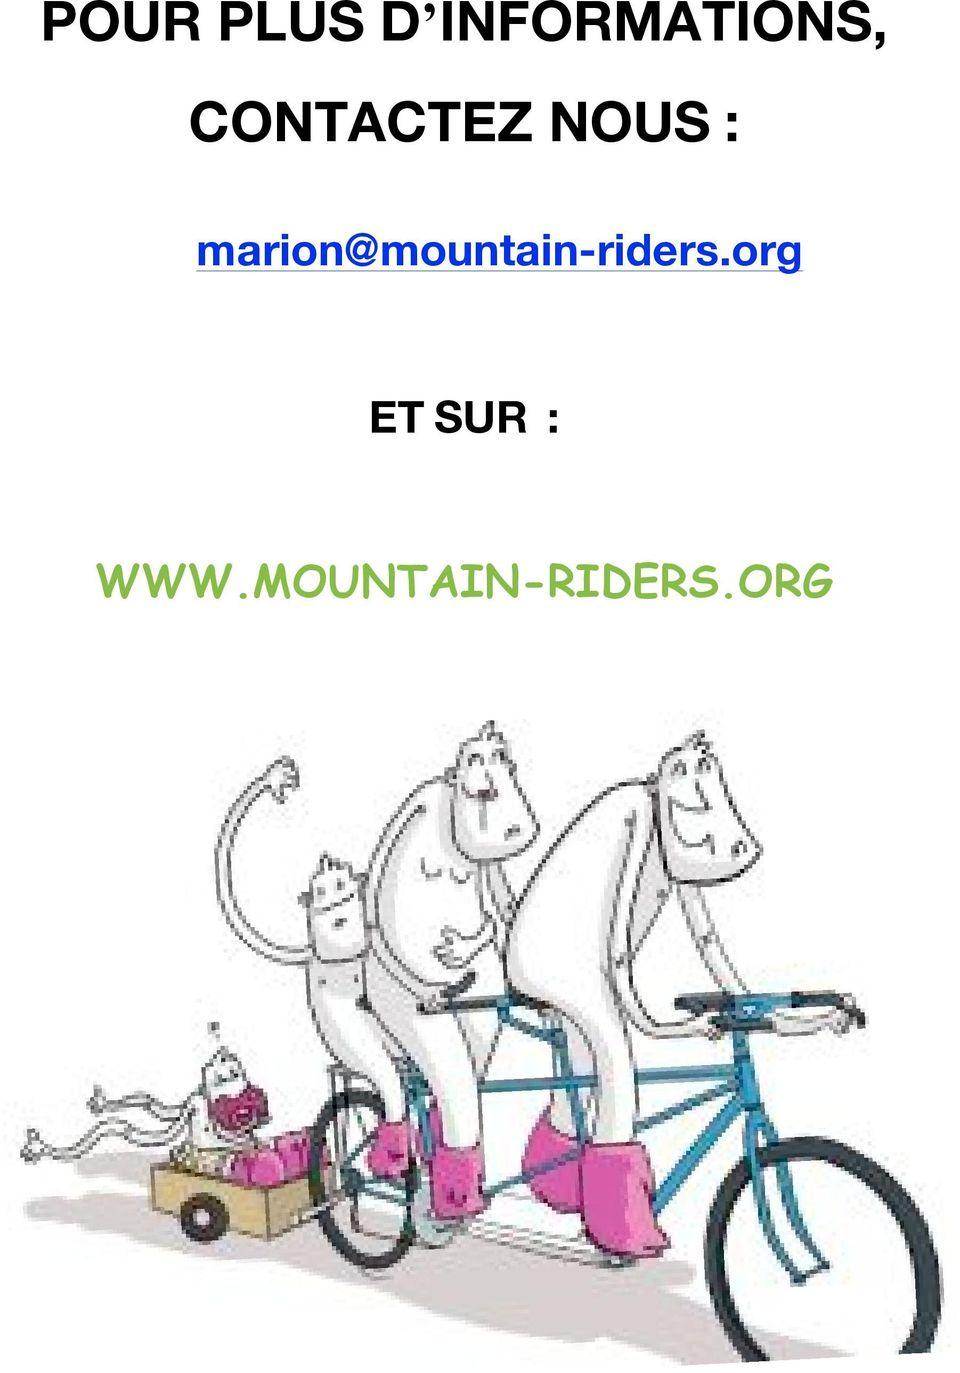 marion@mountain-riders.